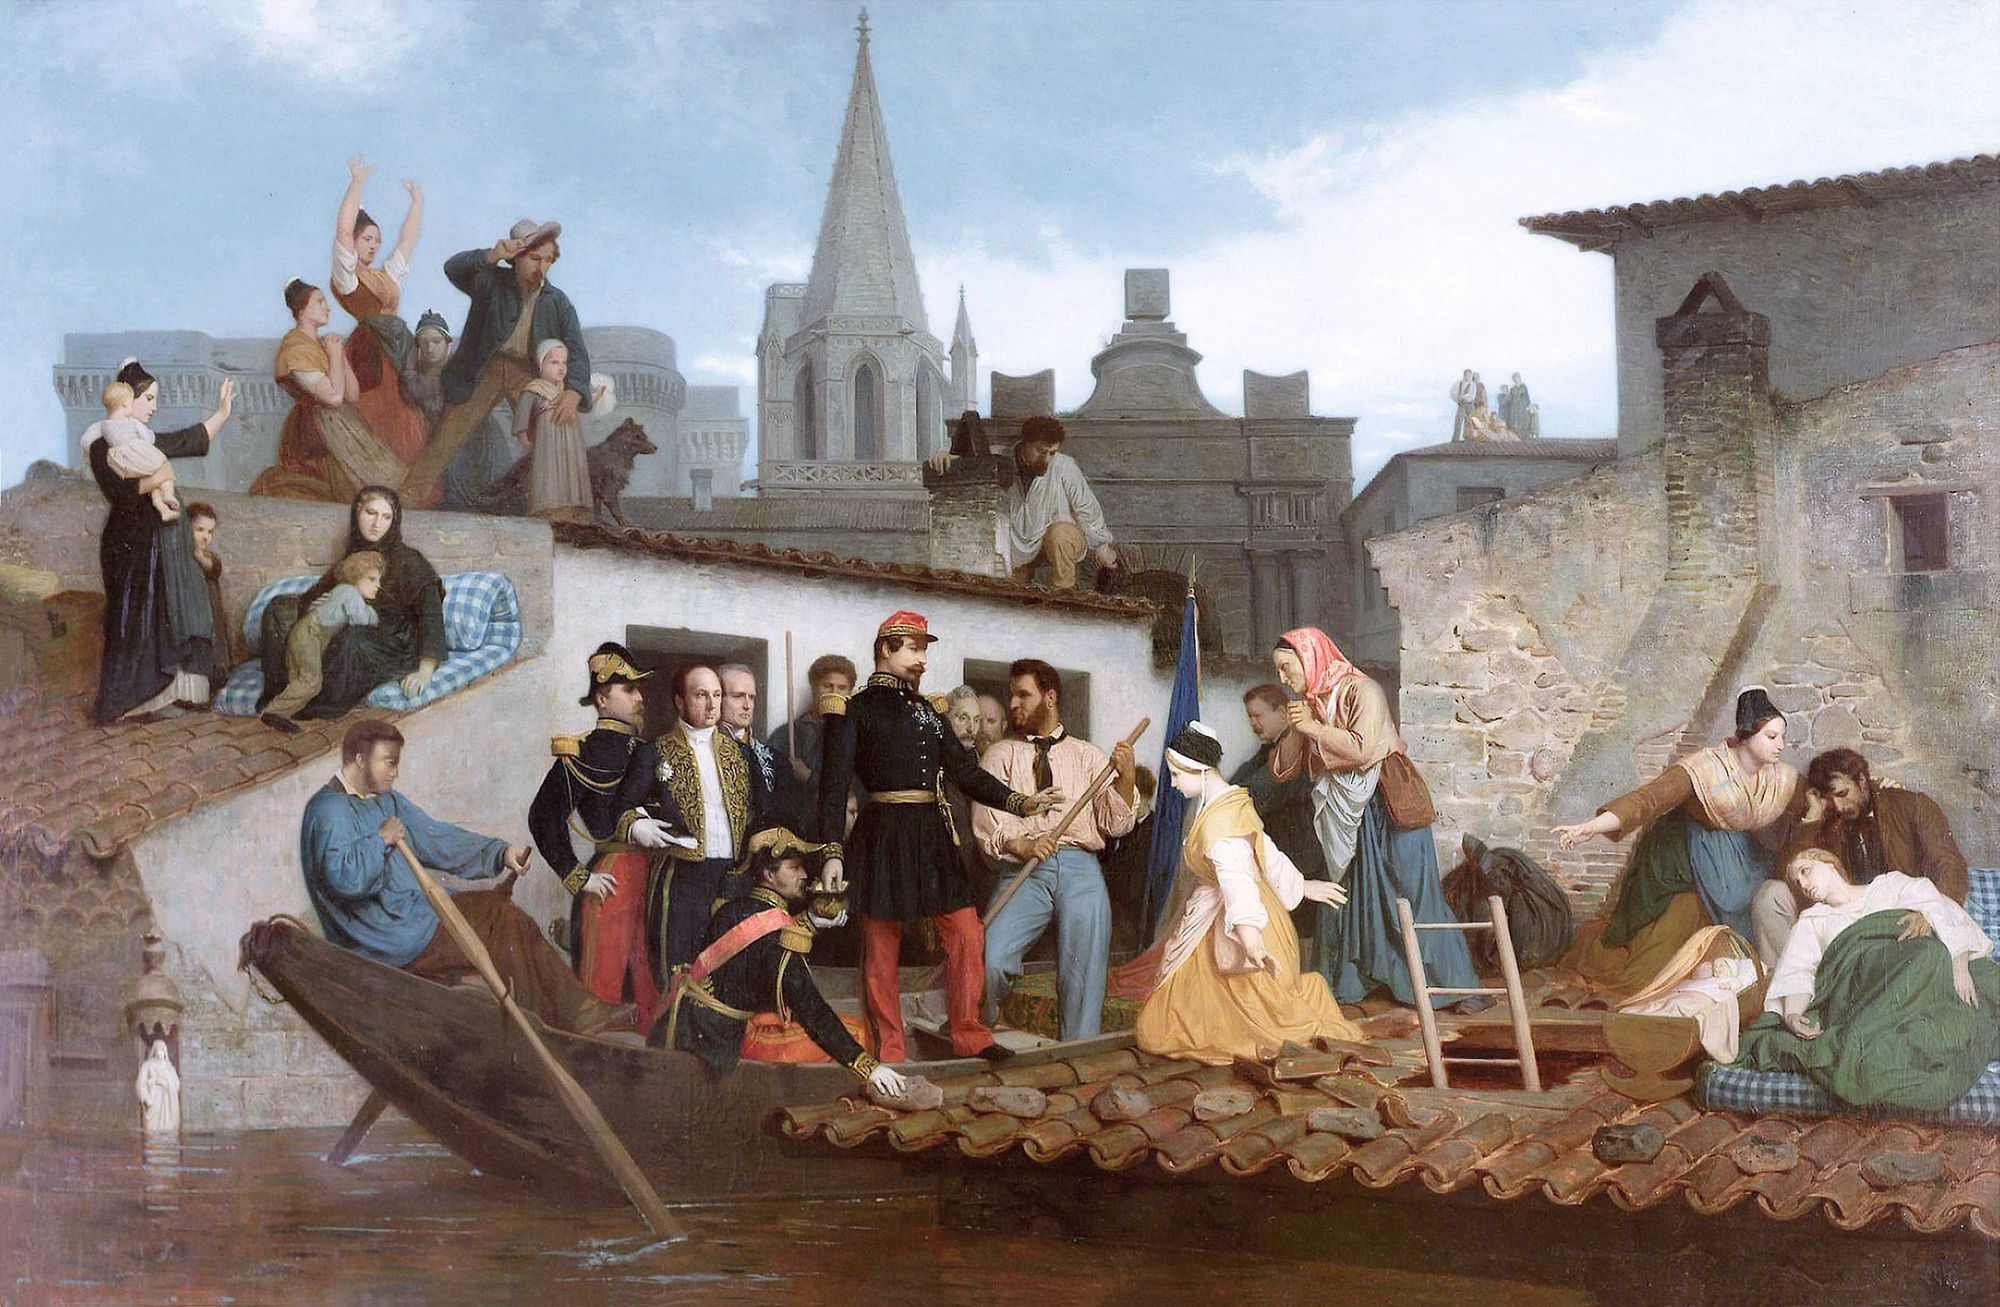 William Bouguereau, Napoléon III visitant les inondations de Tarascon, 1856